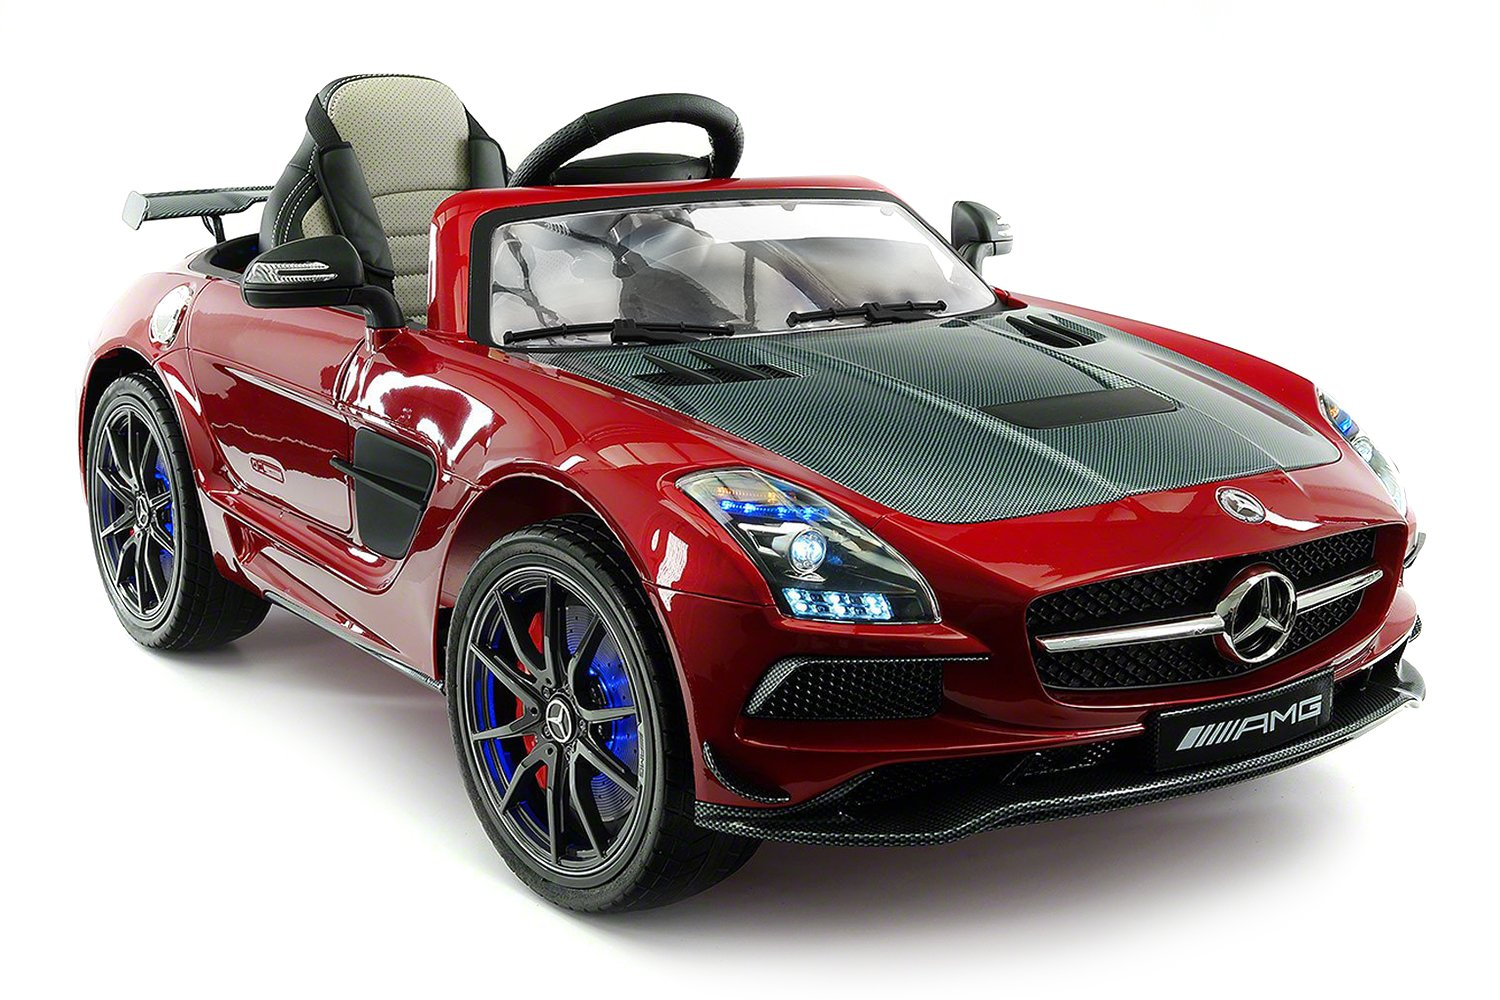 Carbon Red Sls Amg Mercedes Benz Car For Kids 12v Mercedesbenz Genuine Engine Wiring Harness 2711502933 Powered Ride On Leather Seat Led Lights Parental Remote Built In Lcd Touch